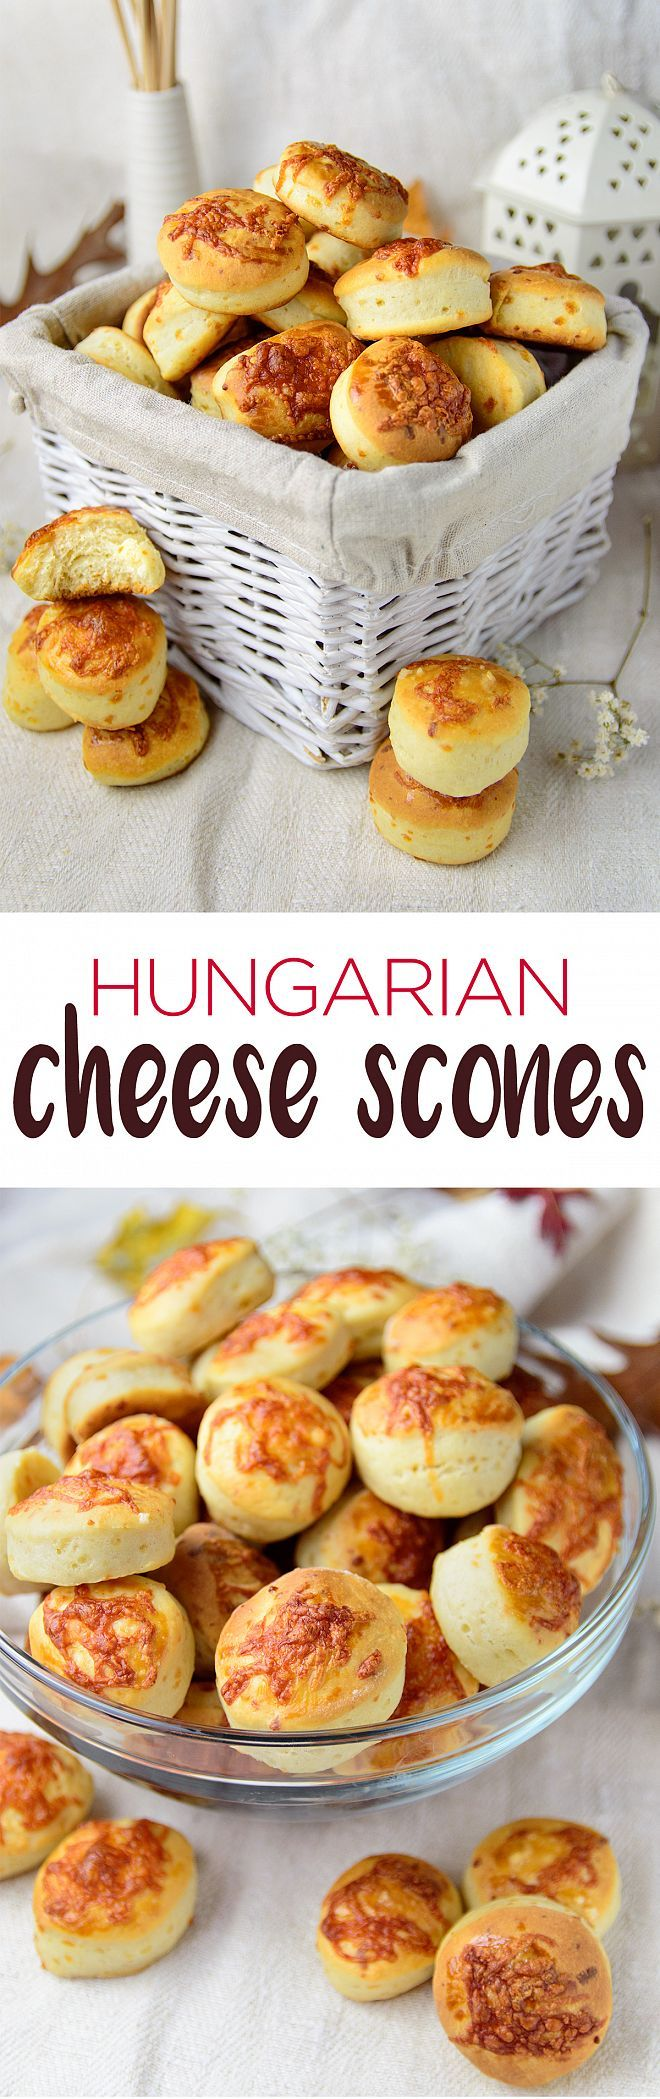 Cheese Scones or Sajtos Pogácsa are traditional Hungarian pastry, the best salty and cheesy party food you can ever bake. | myzucchinirecipes.com